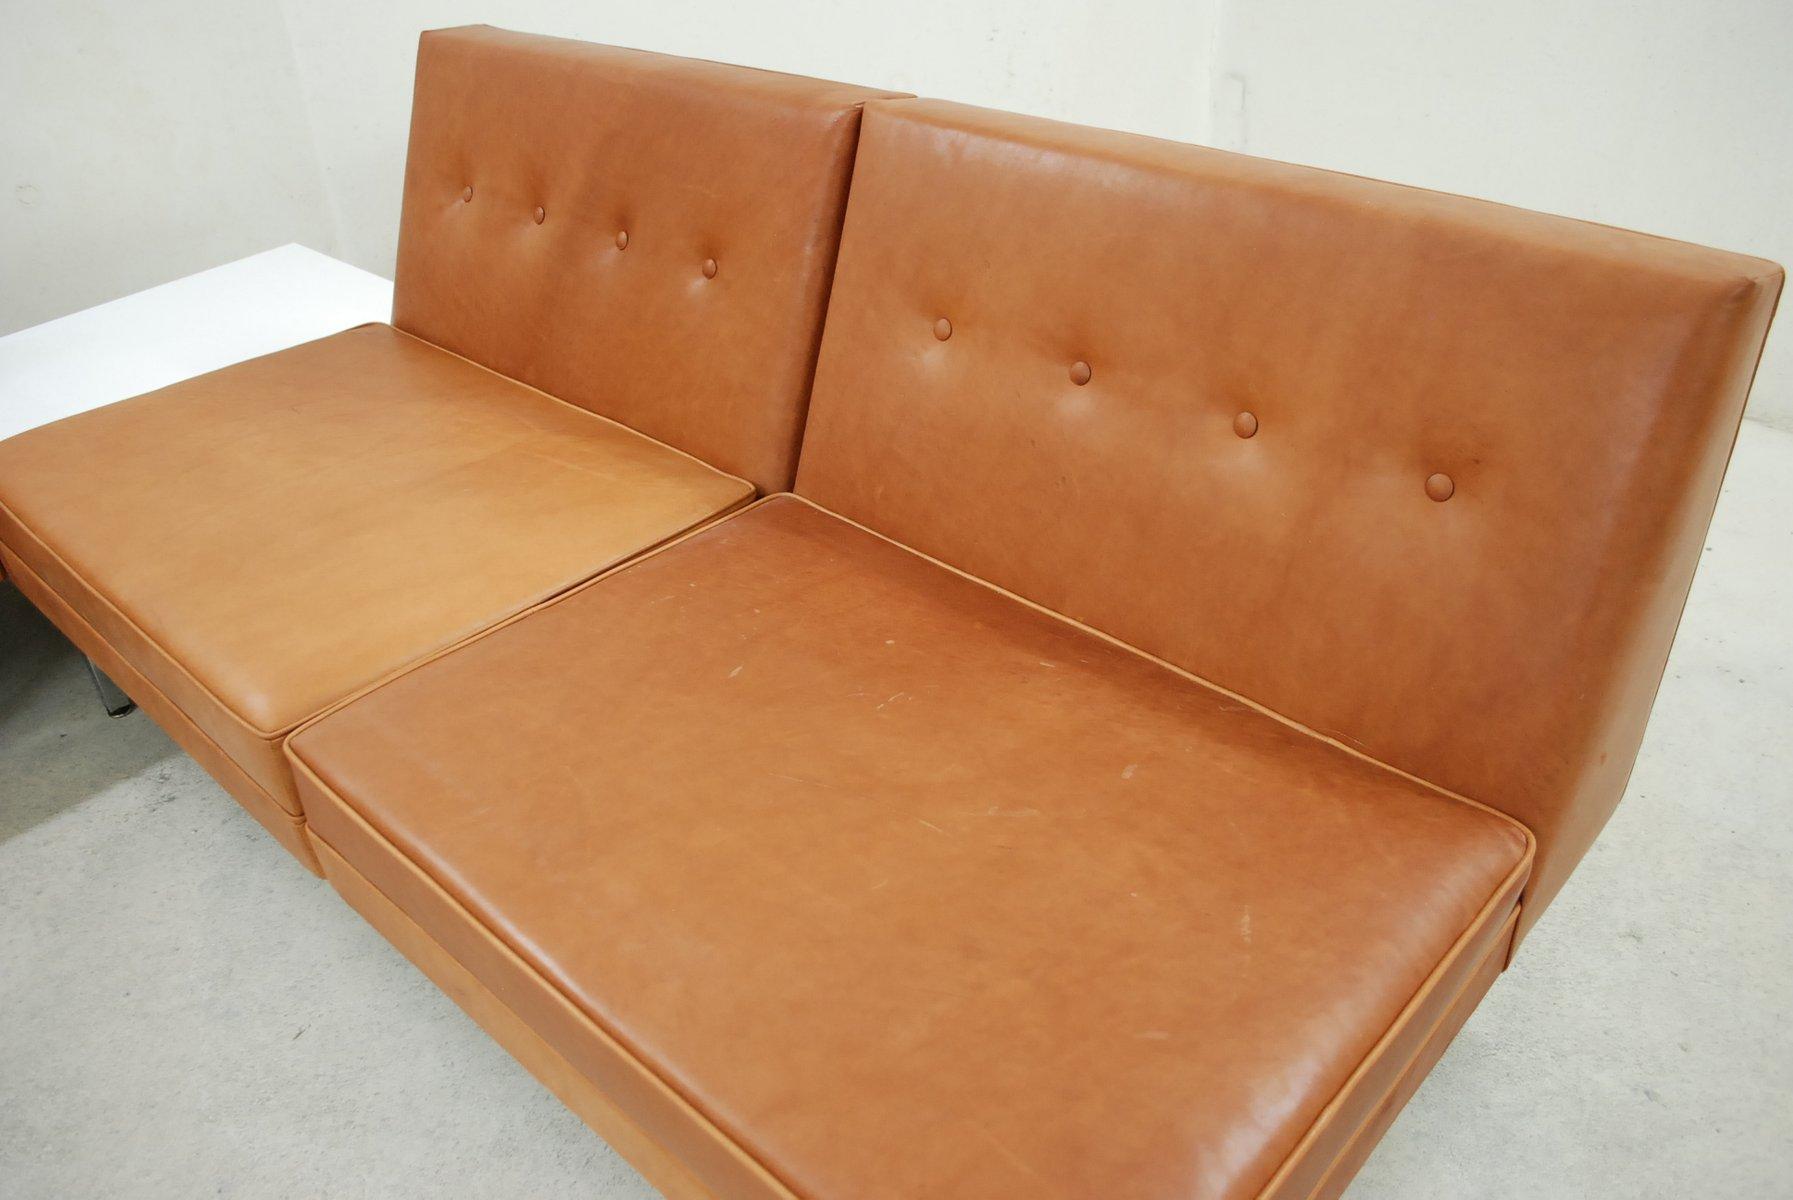 algarve leather sofa and loveseat set multiyork bed mattress cognac modular by george nelson for